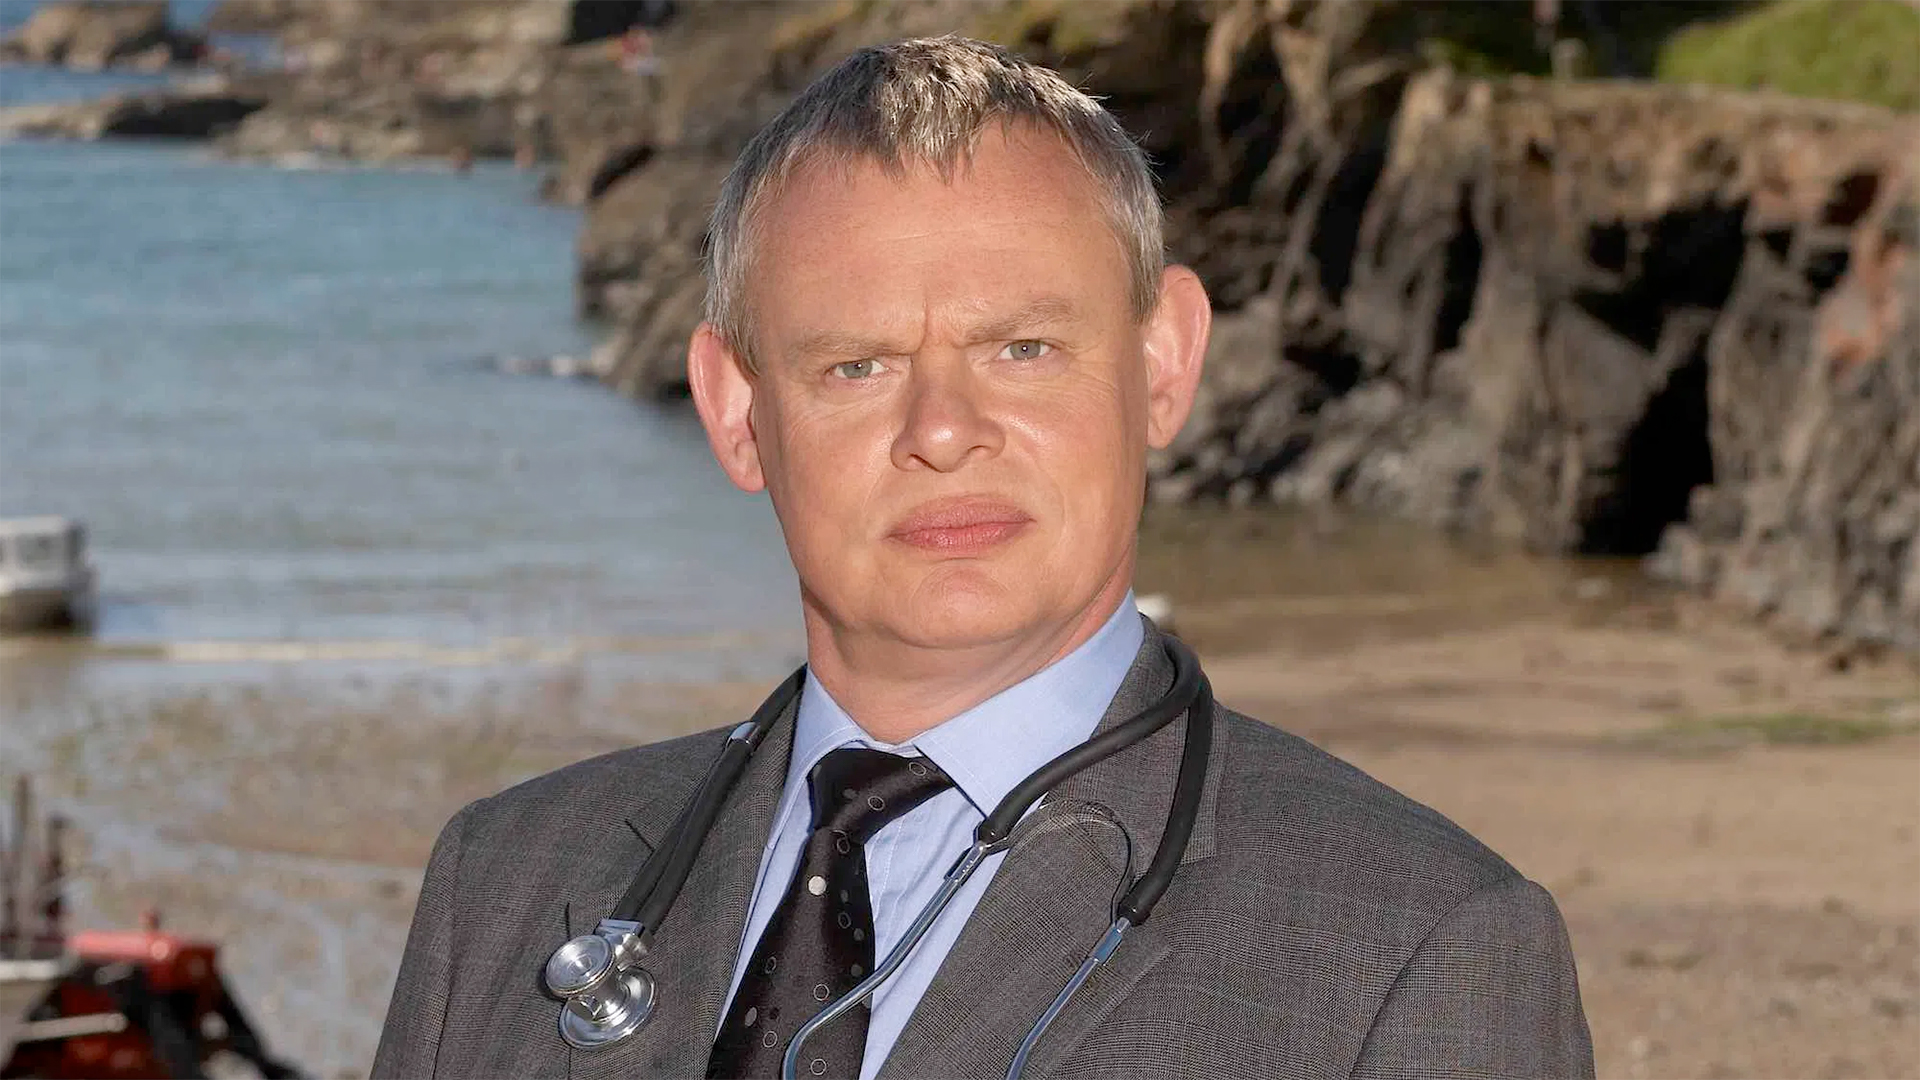 Martin Clunes as Doc Martin standing in front of a rocky coastline.